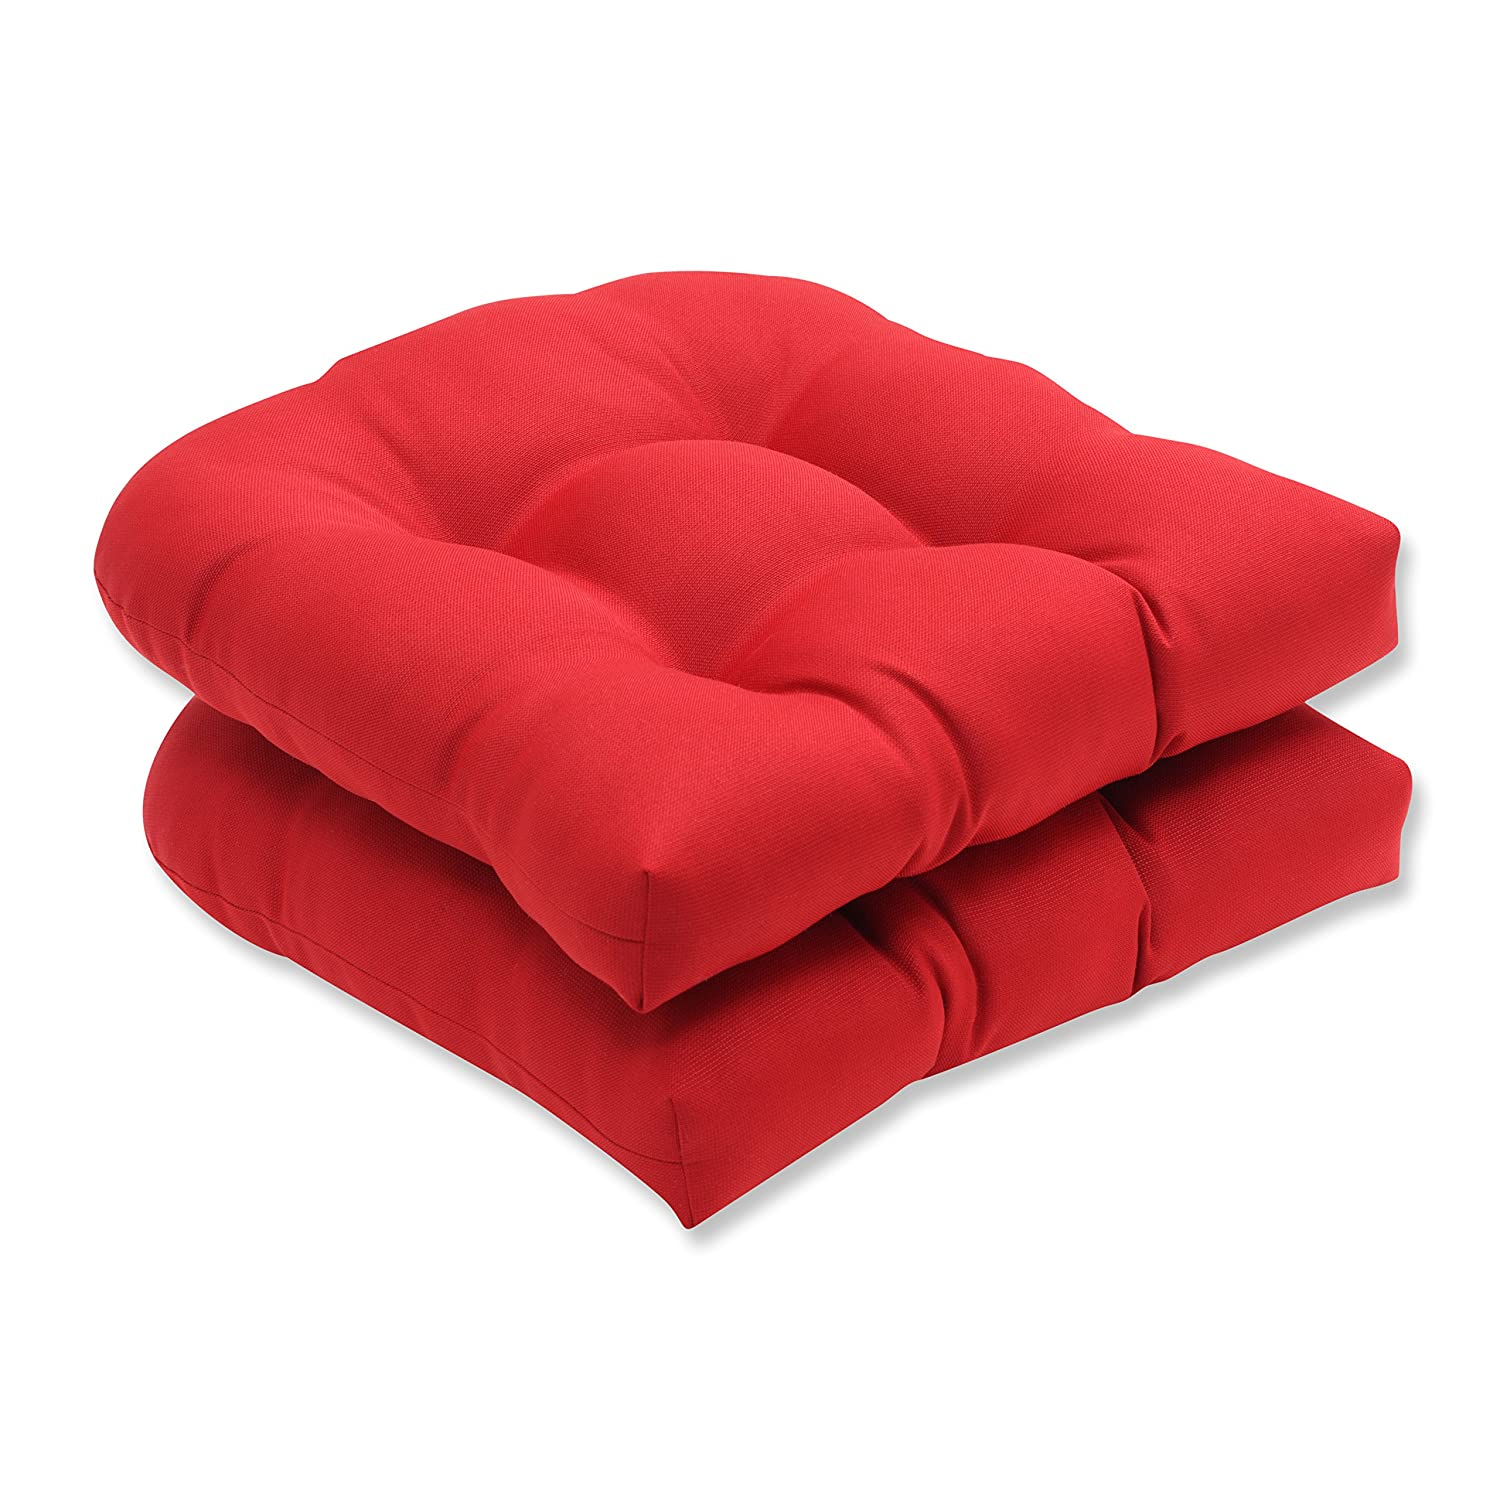 Pillow Perfect Indoor/Outdoor Red Solid Wicker Seat Cushions, 2-Pack - Patio Furniture Cushions Amazon.com